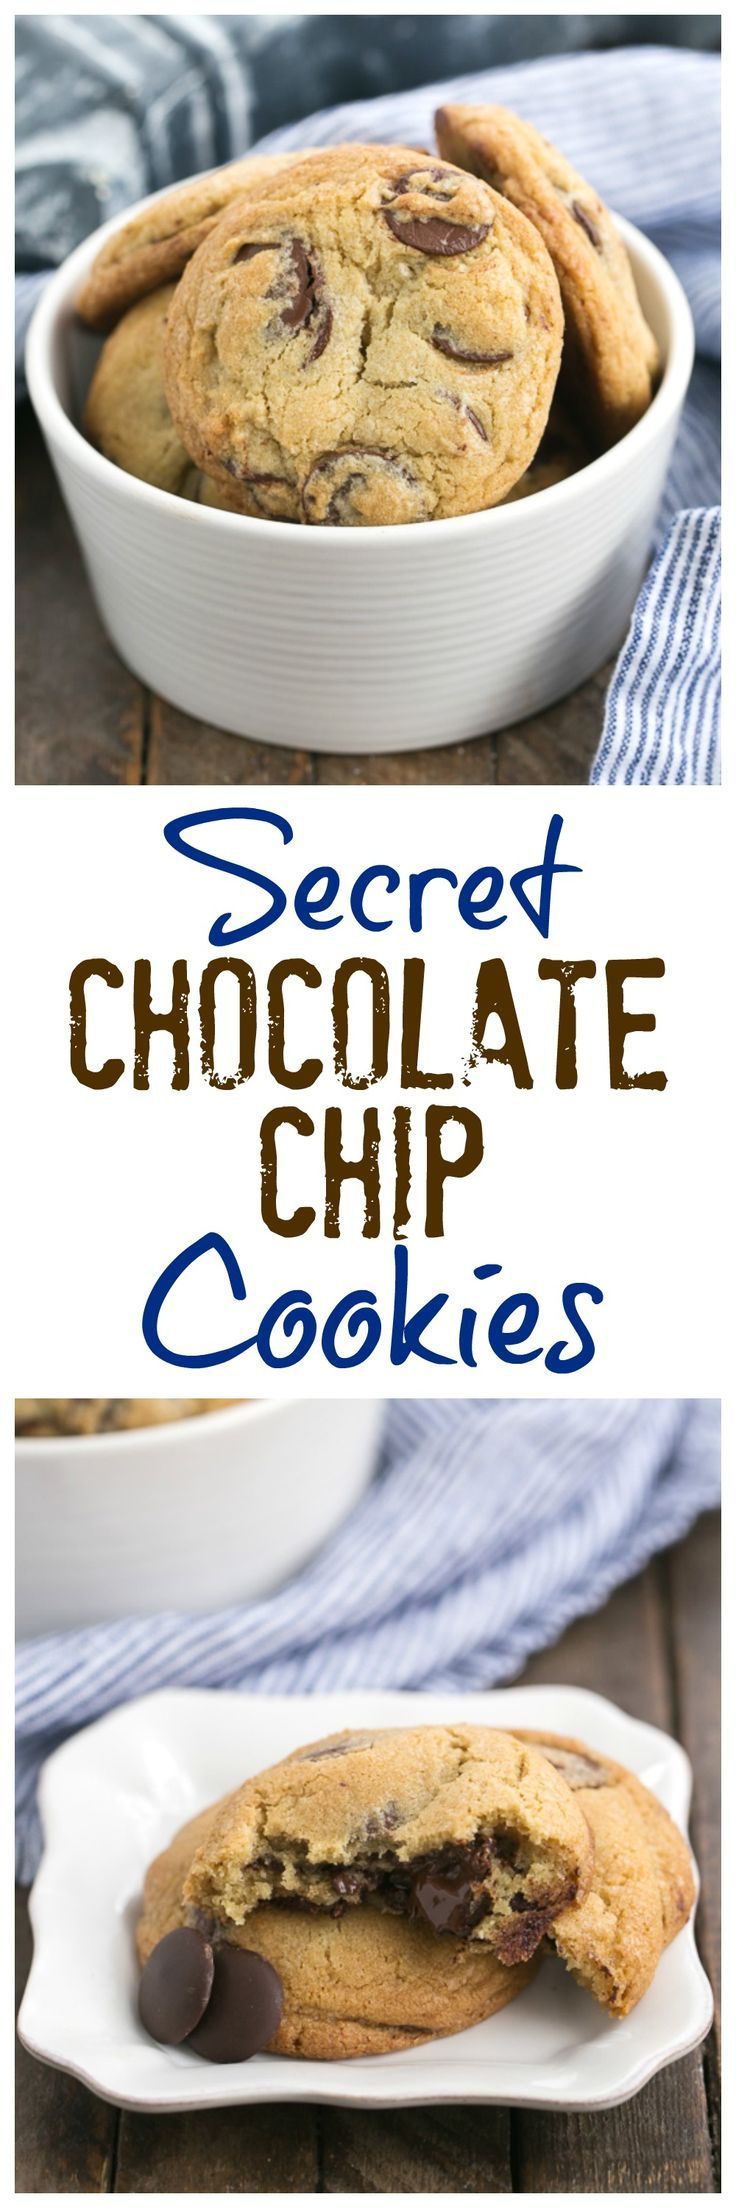 Jacques Torres Secret Chocolate Chip Cookies Truly the BEST chocolate chip cookie recipe! @lizzydo